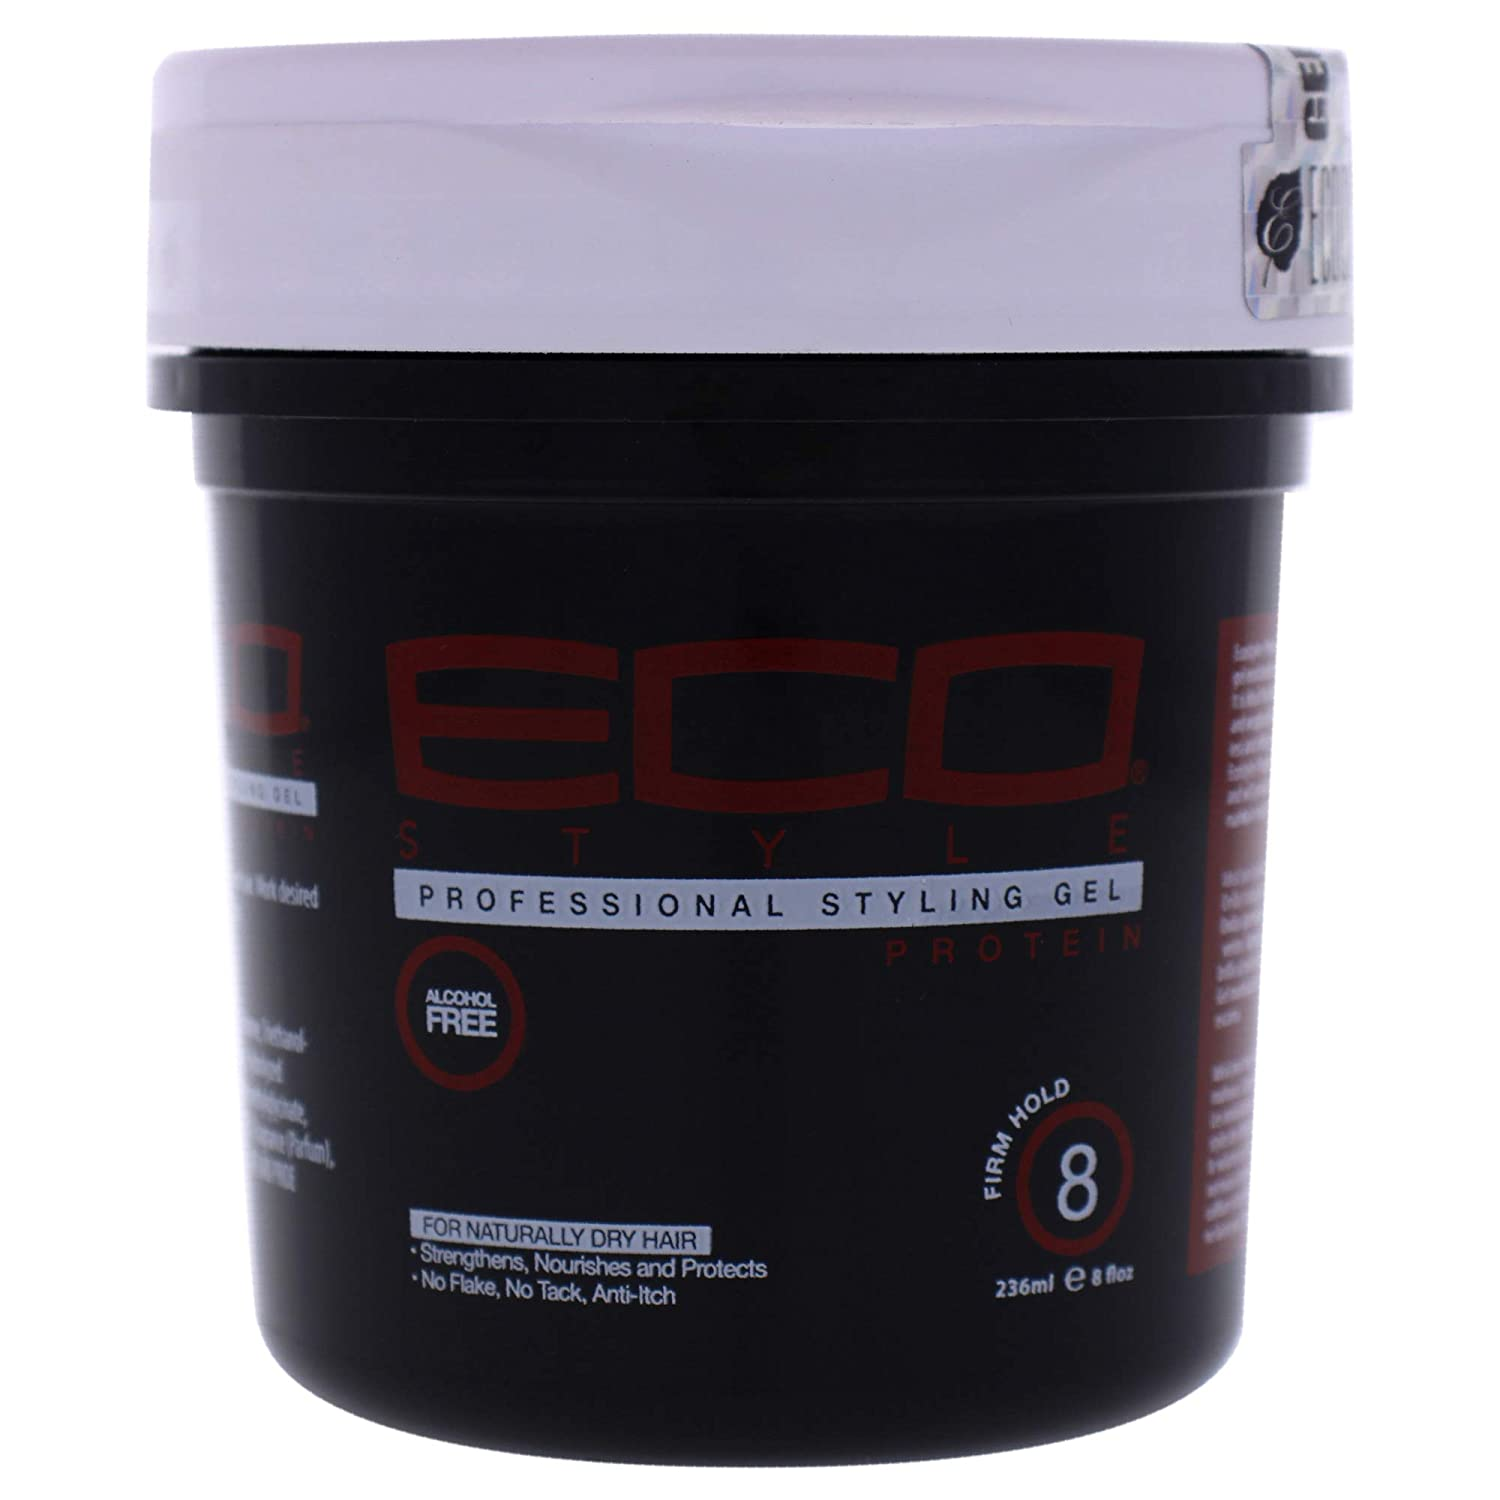 Eco Style Protein Styling Gel Ounce 001068 8 Cash special price Kansas City Mall Jar